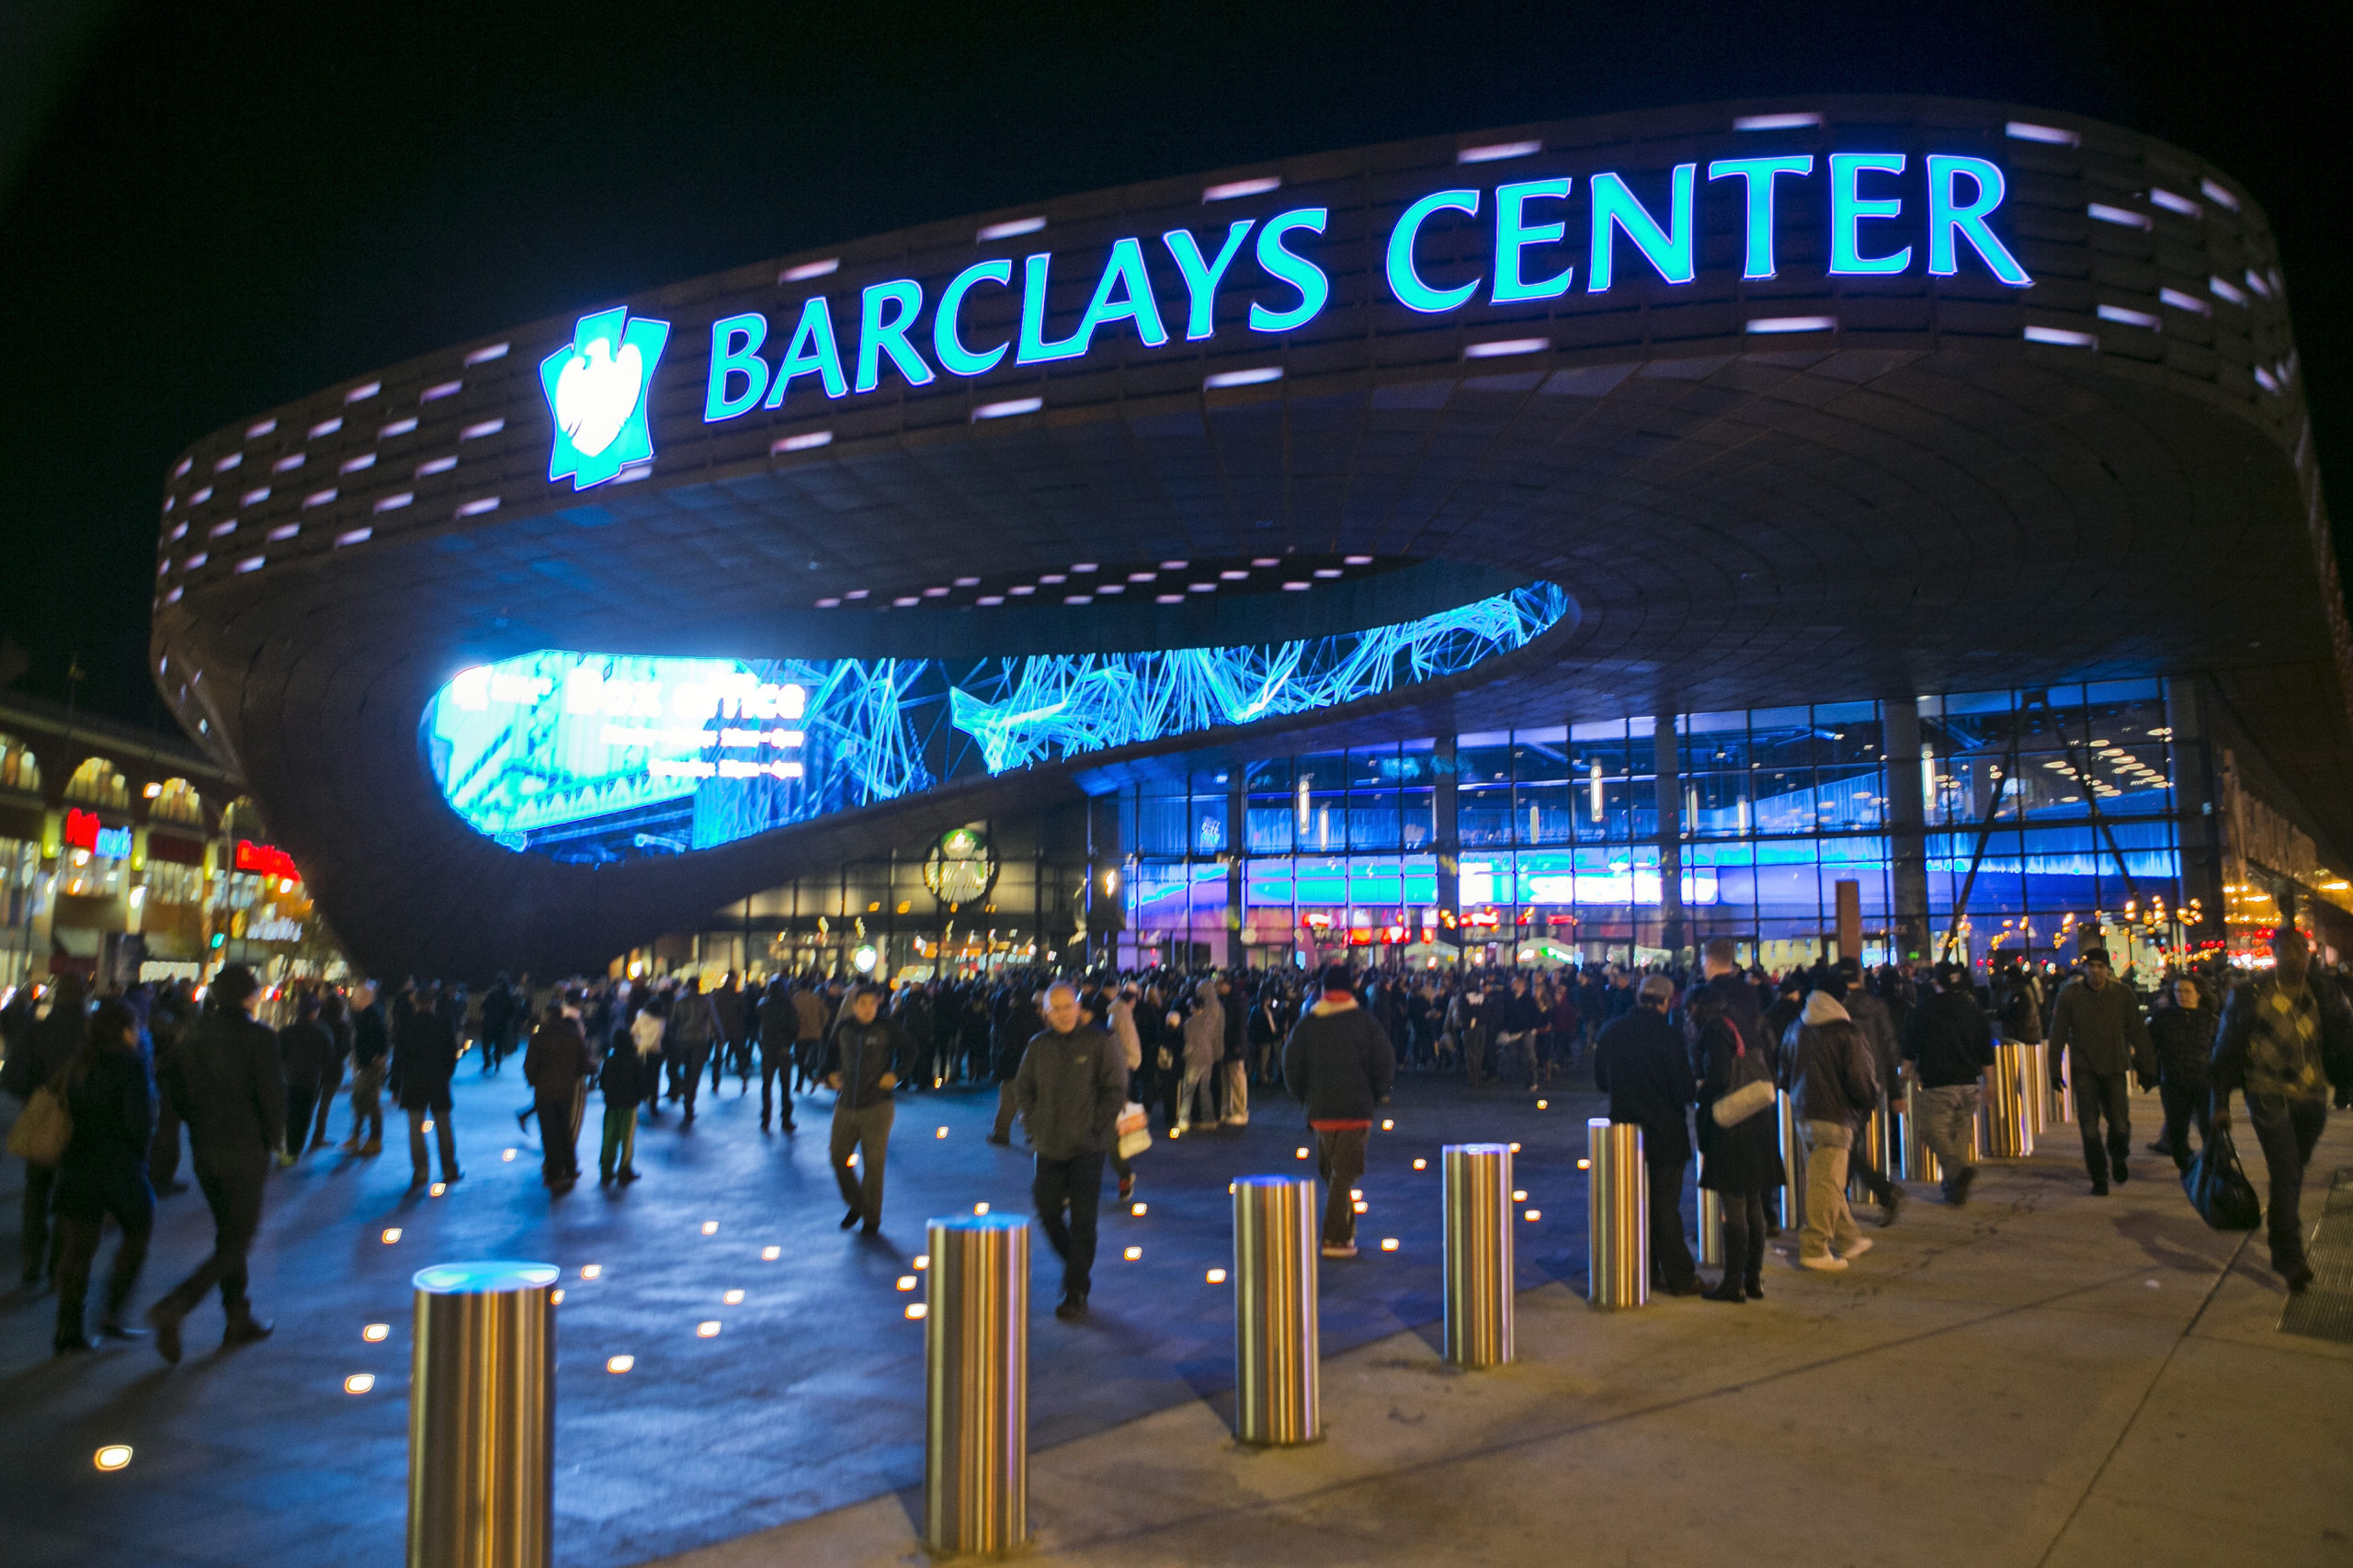 Barclay Center Vows to Support Hourly Employees Amid Event Cancellations